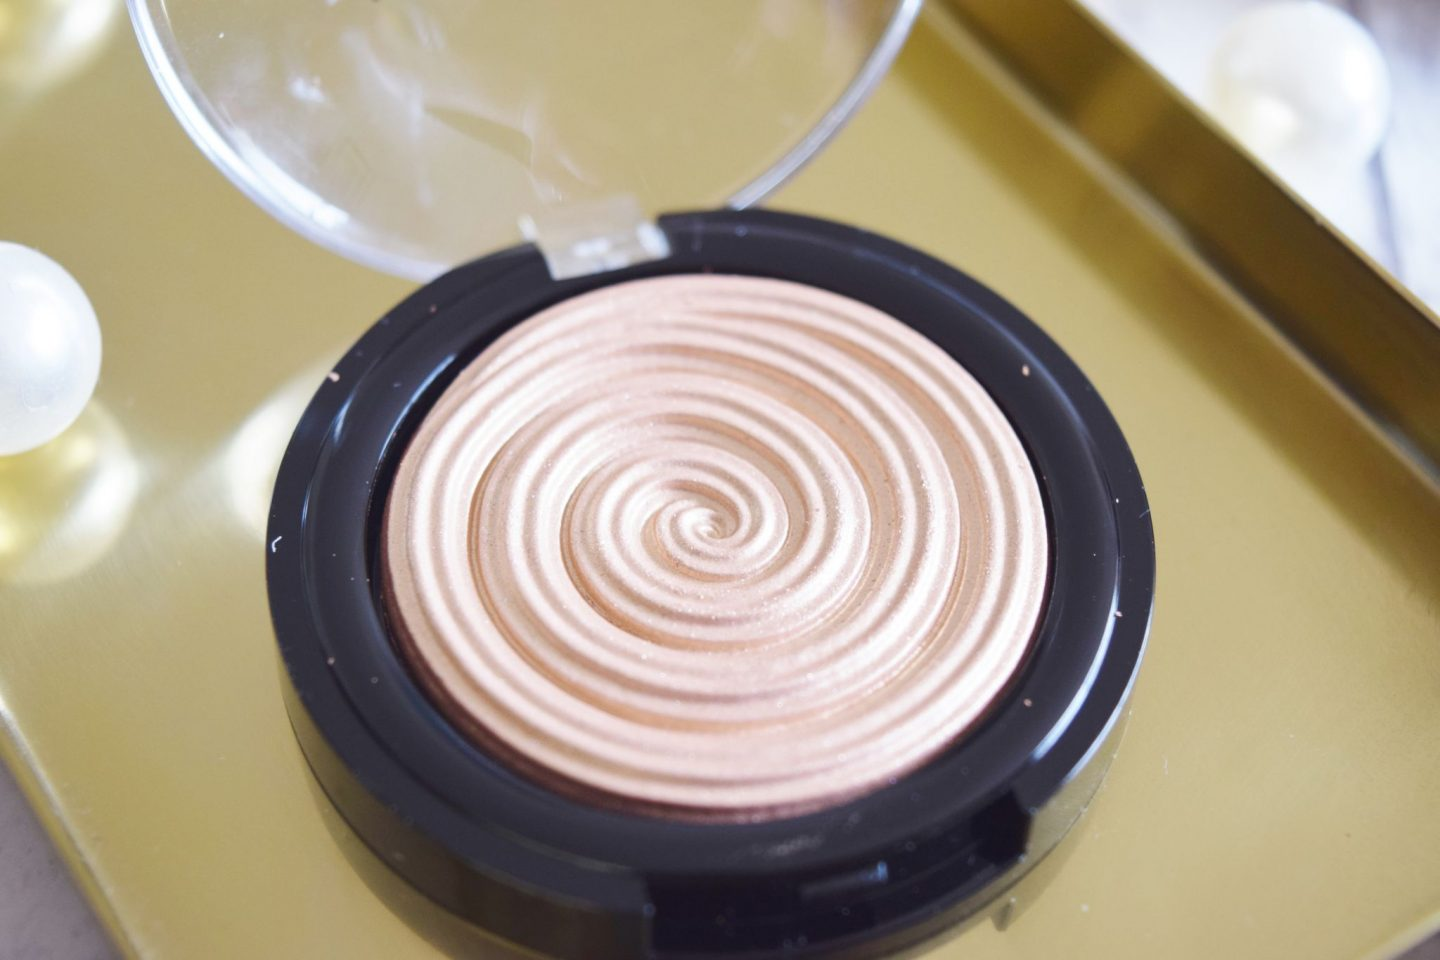 Laura Geller Beauty Baked Gelato Swirl Illuminator in Gilded Honey